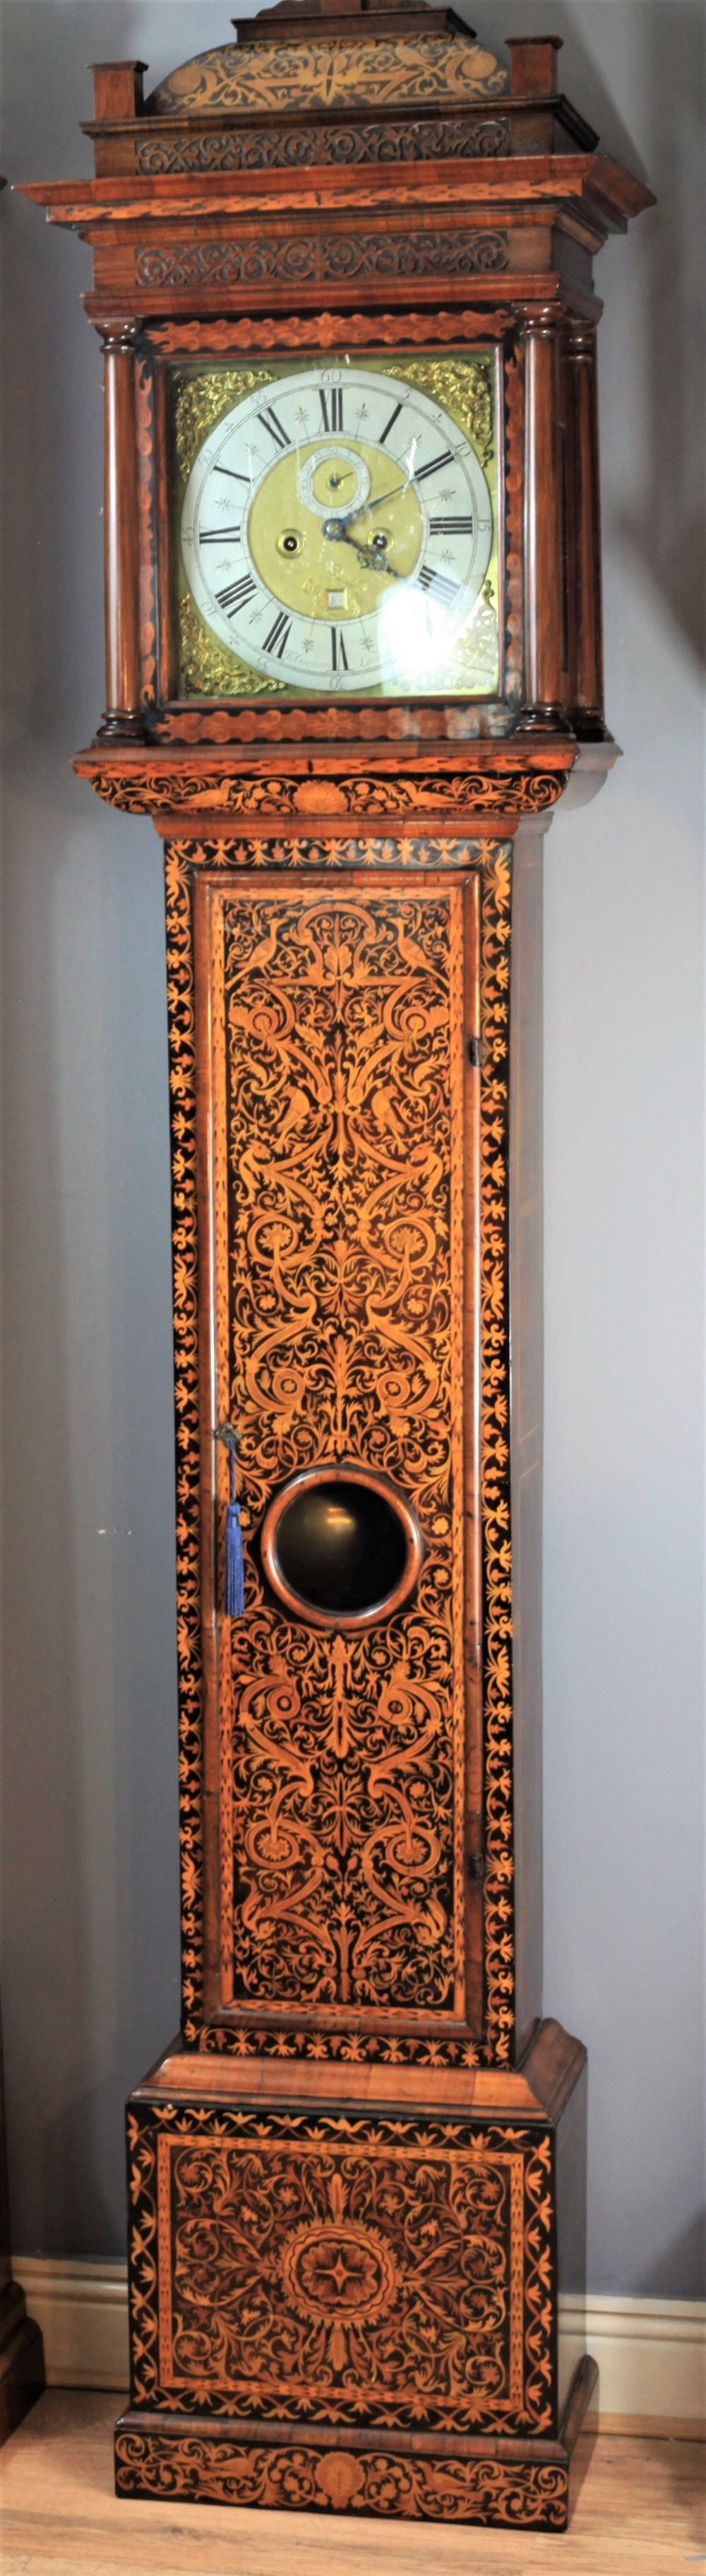 exceptional quality william and mary arabesque marquetry longcase clock by john gammon c1690